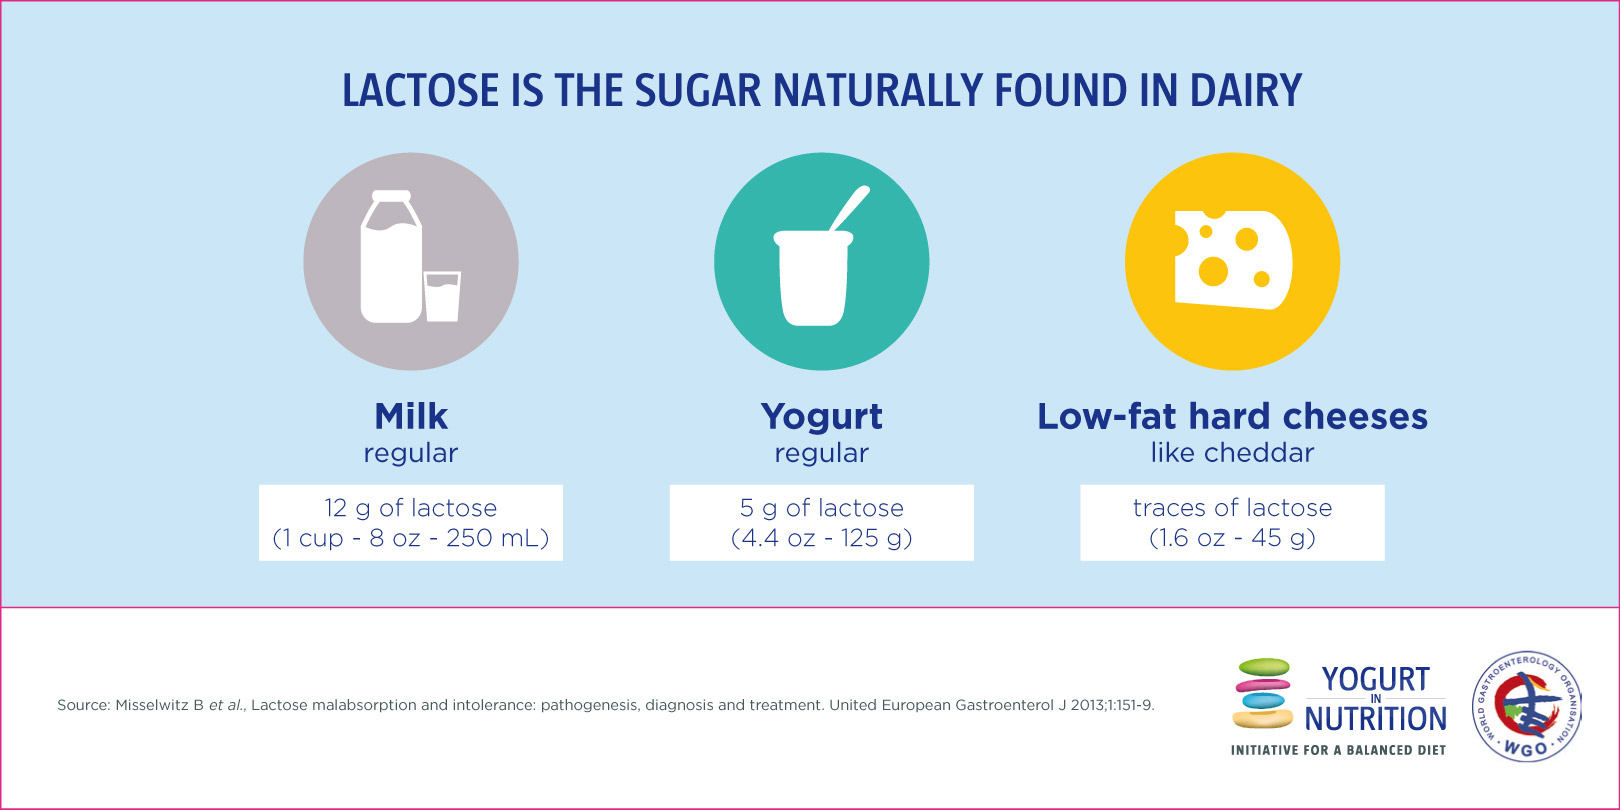 What is the role of lactose  Yogurt in Nutrition